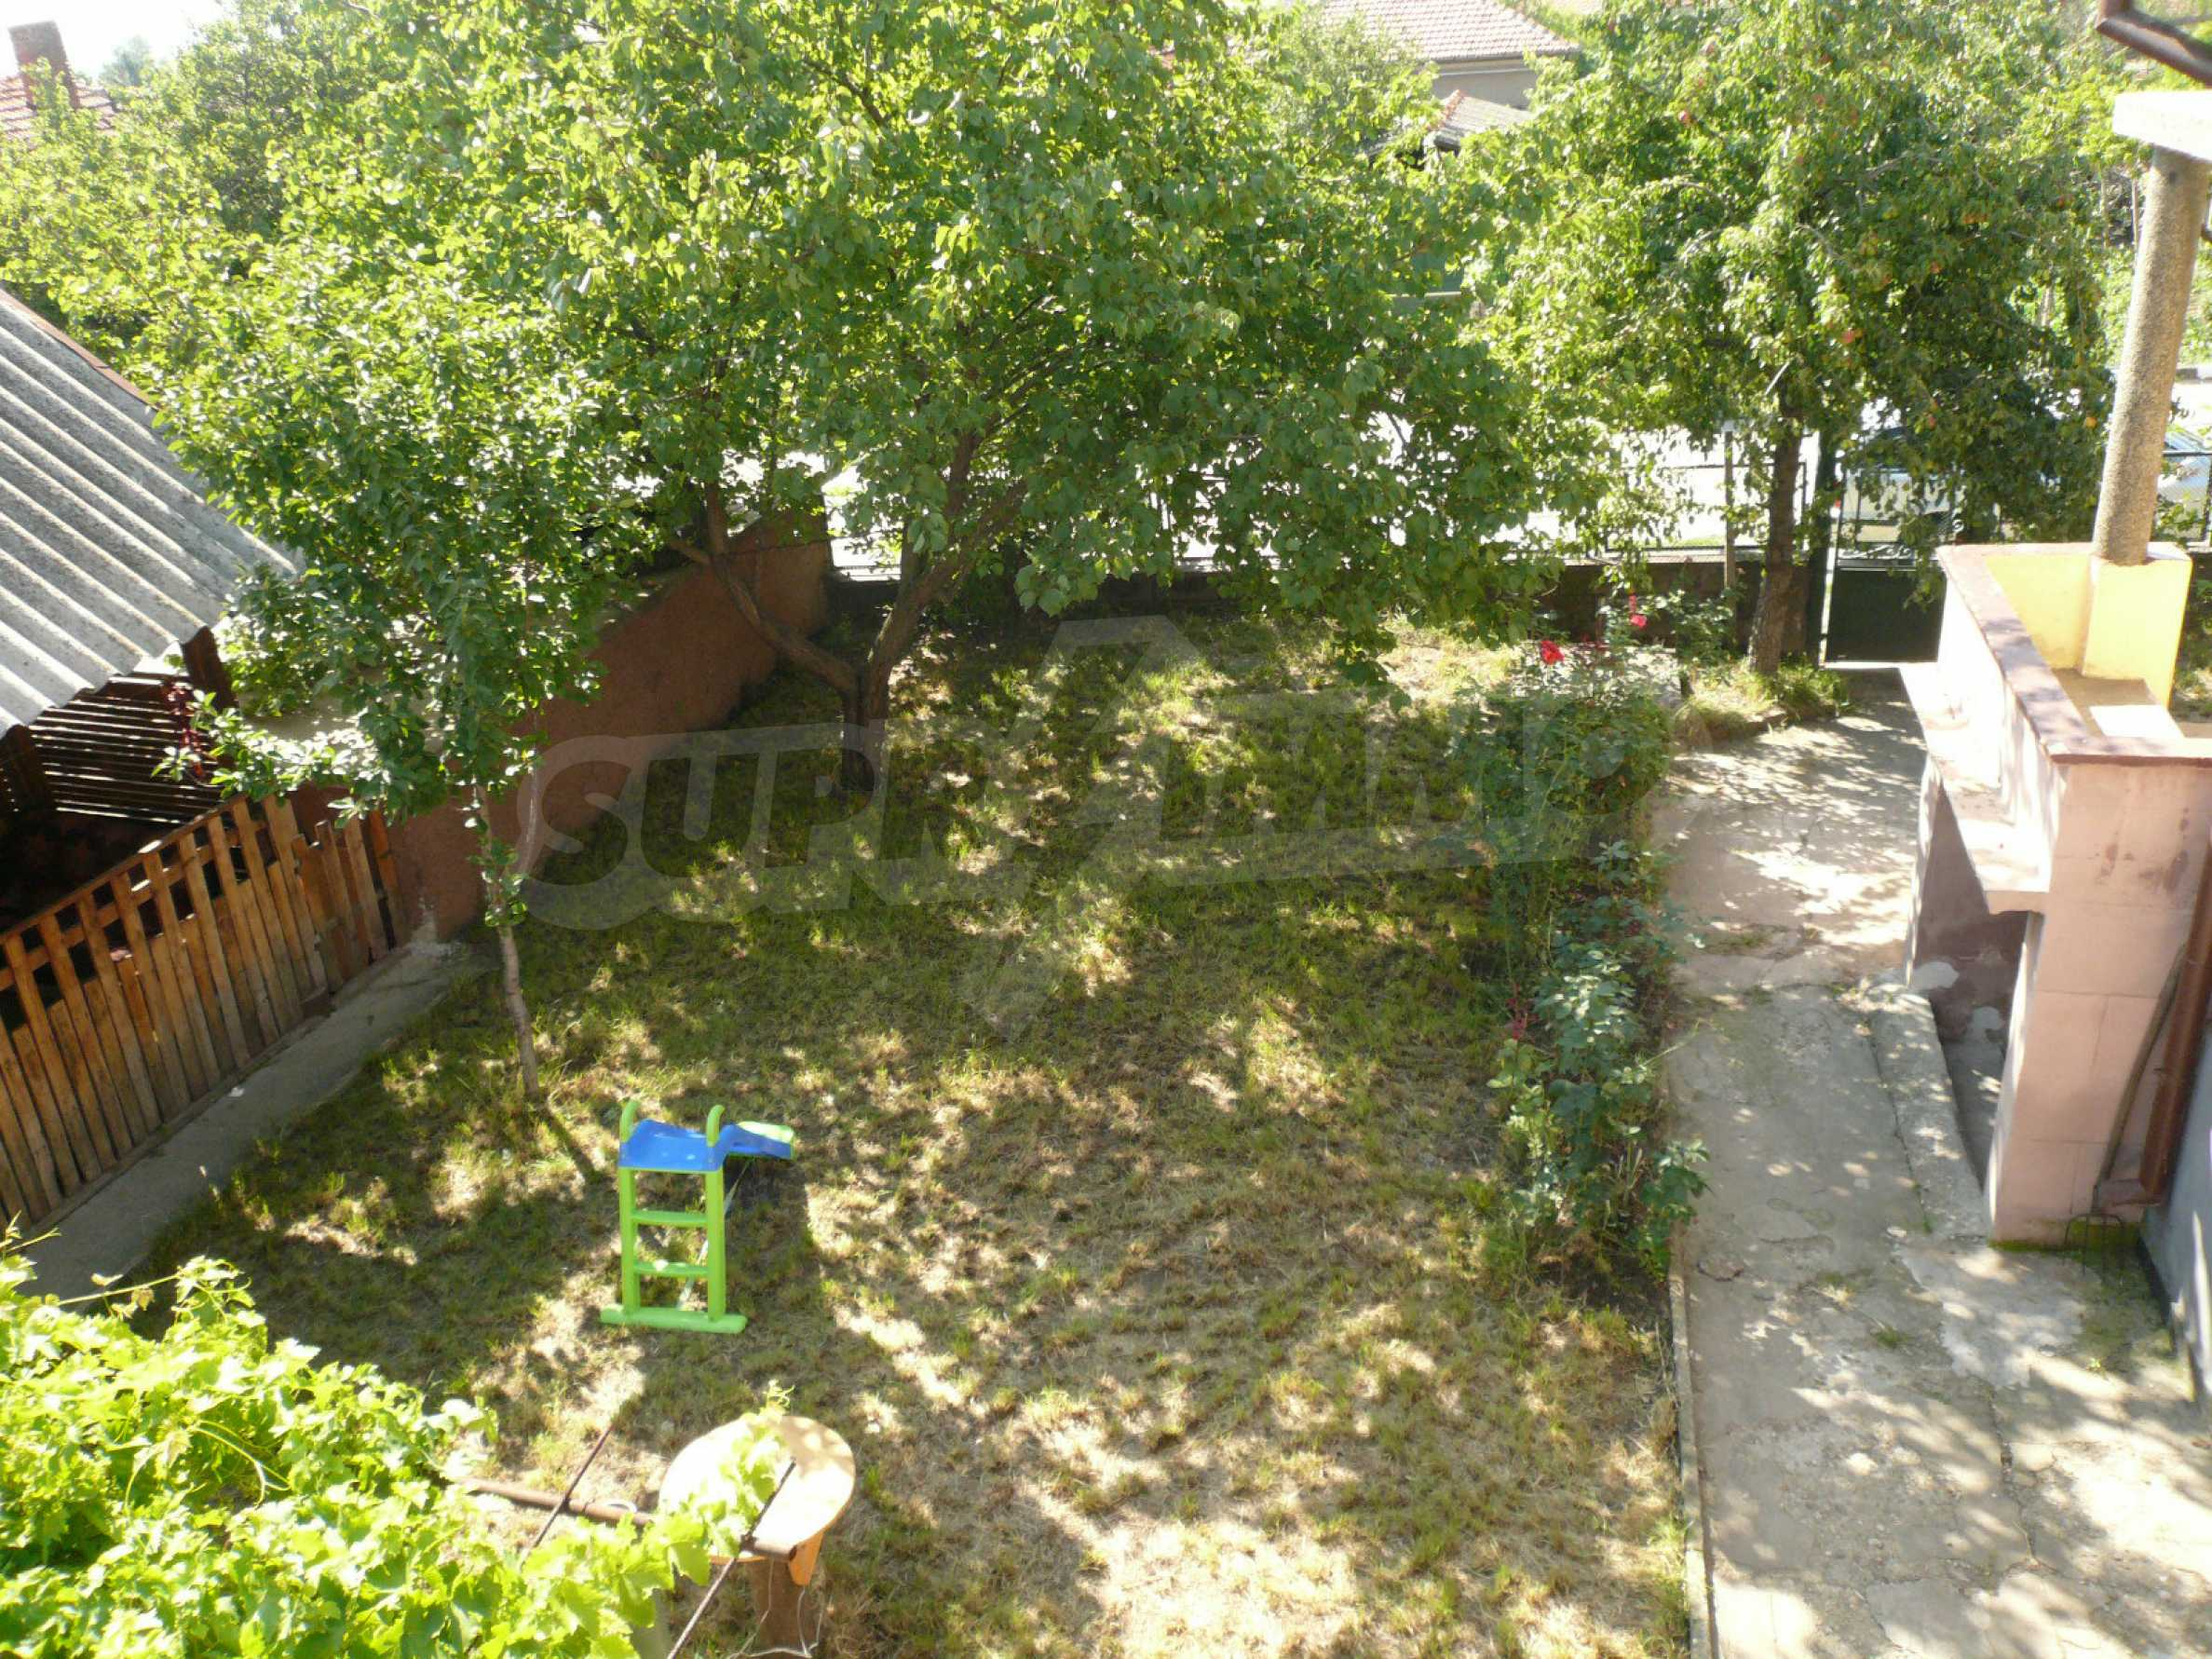 Rural houses with garden 12 km from Vidin 14